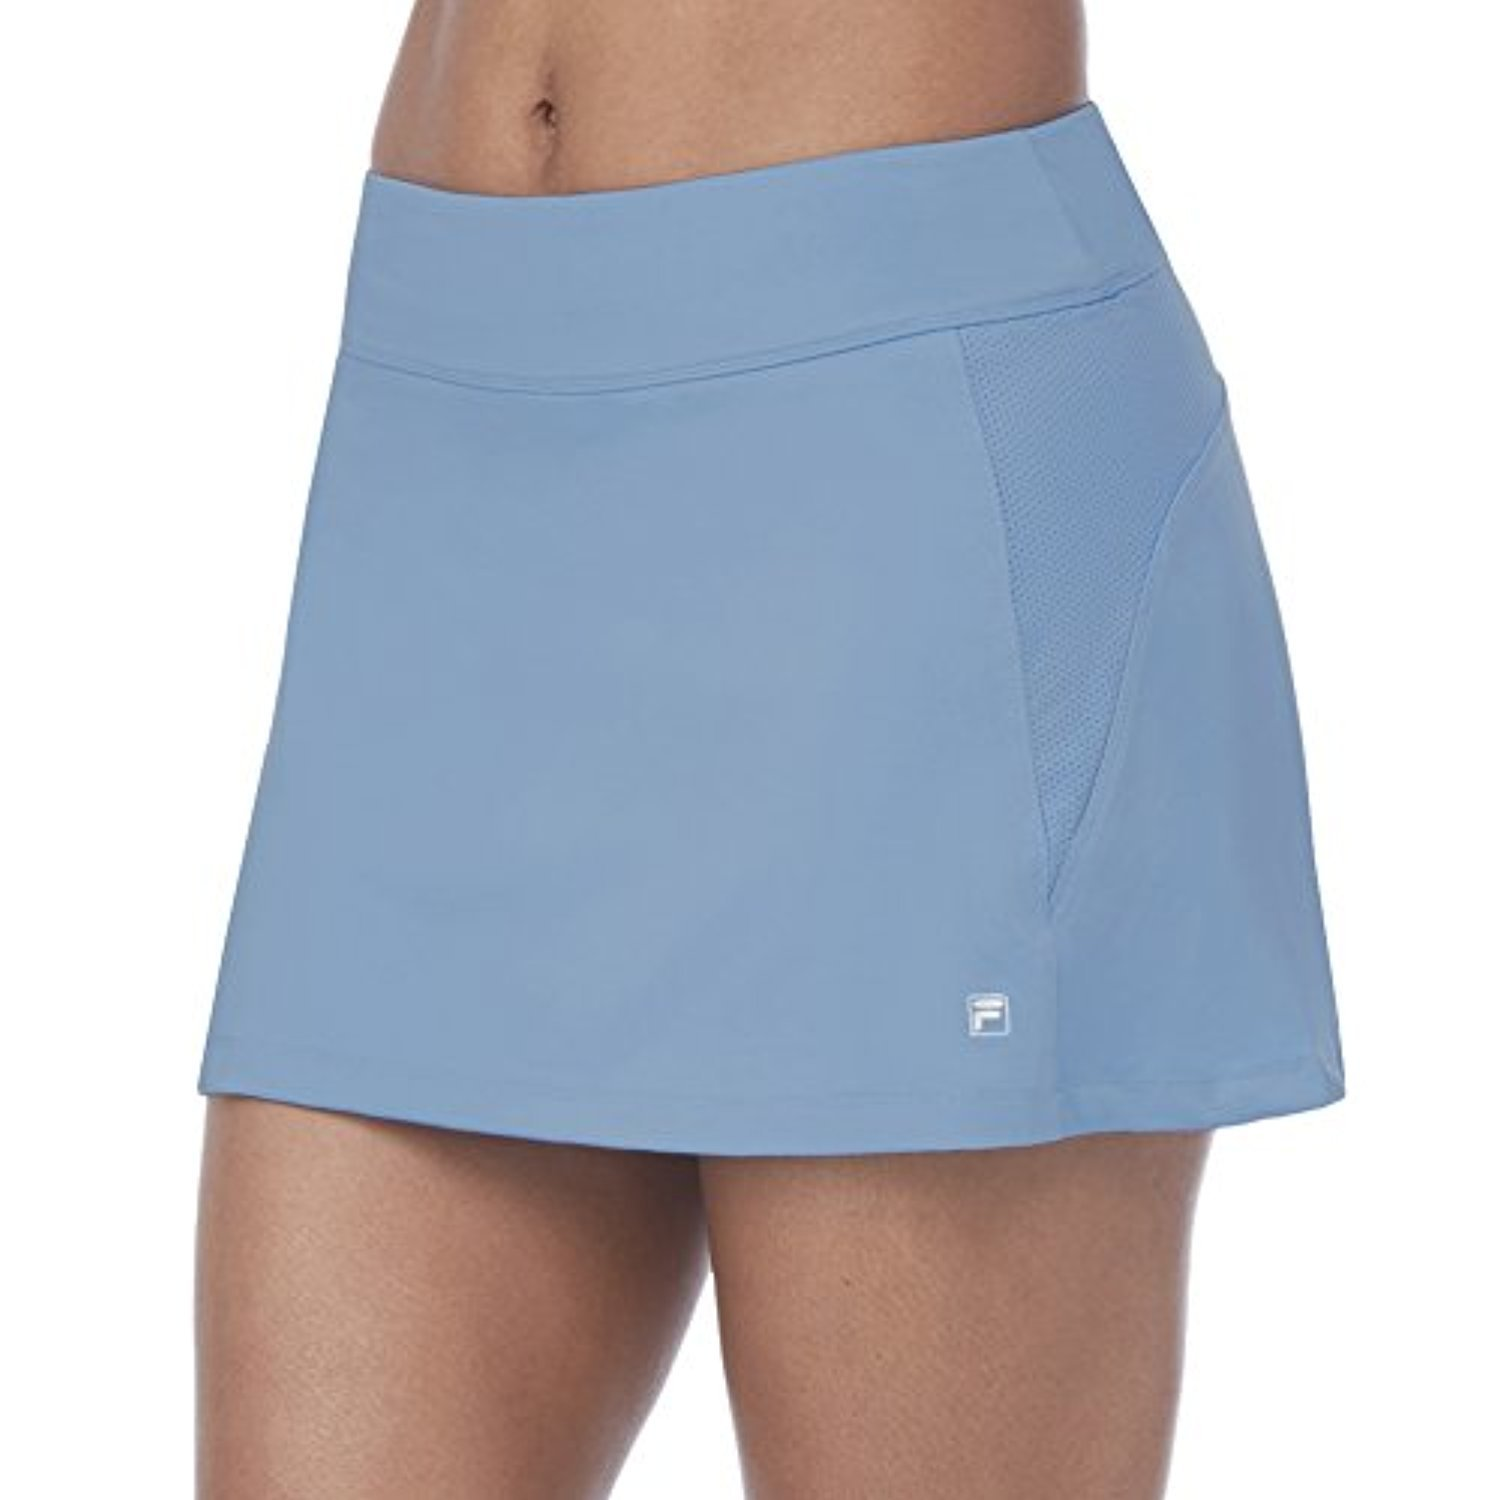 9f168c0fda 100% Polyester A-line skort- This skort has a fashionable A-line hem.  Coolmax lining- A Coolmax lining helps keep you from overheating and  reduces ...